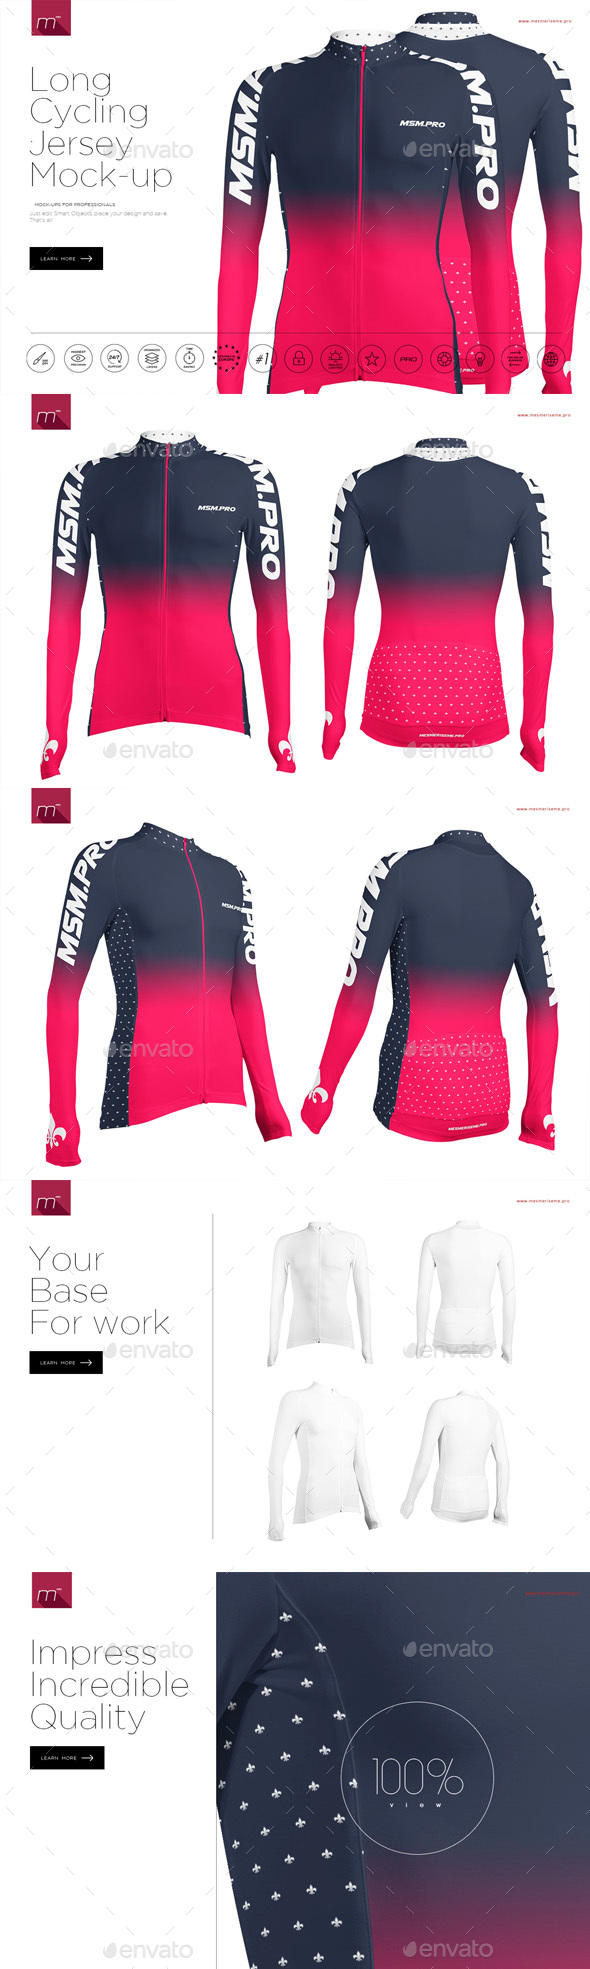 Download Long Cycling Jersey Mock Up Miscellaneous Apparel Mockup Design Bike Design Mockup Photoshop